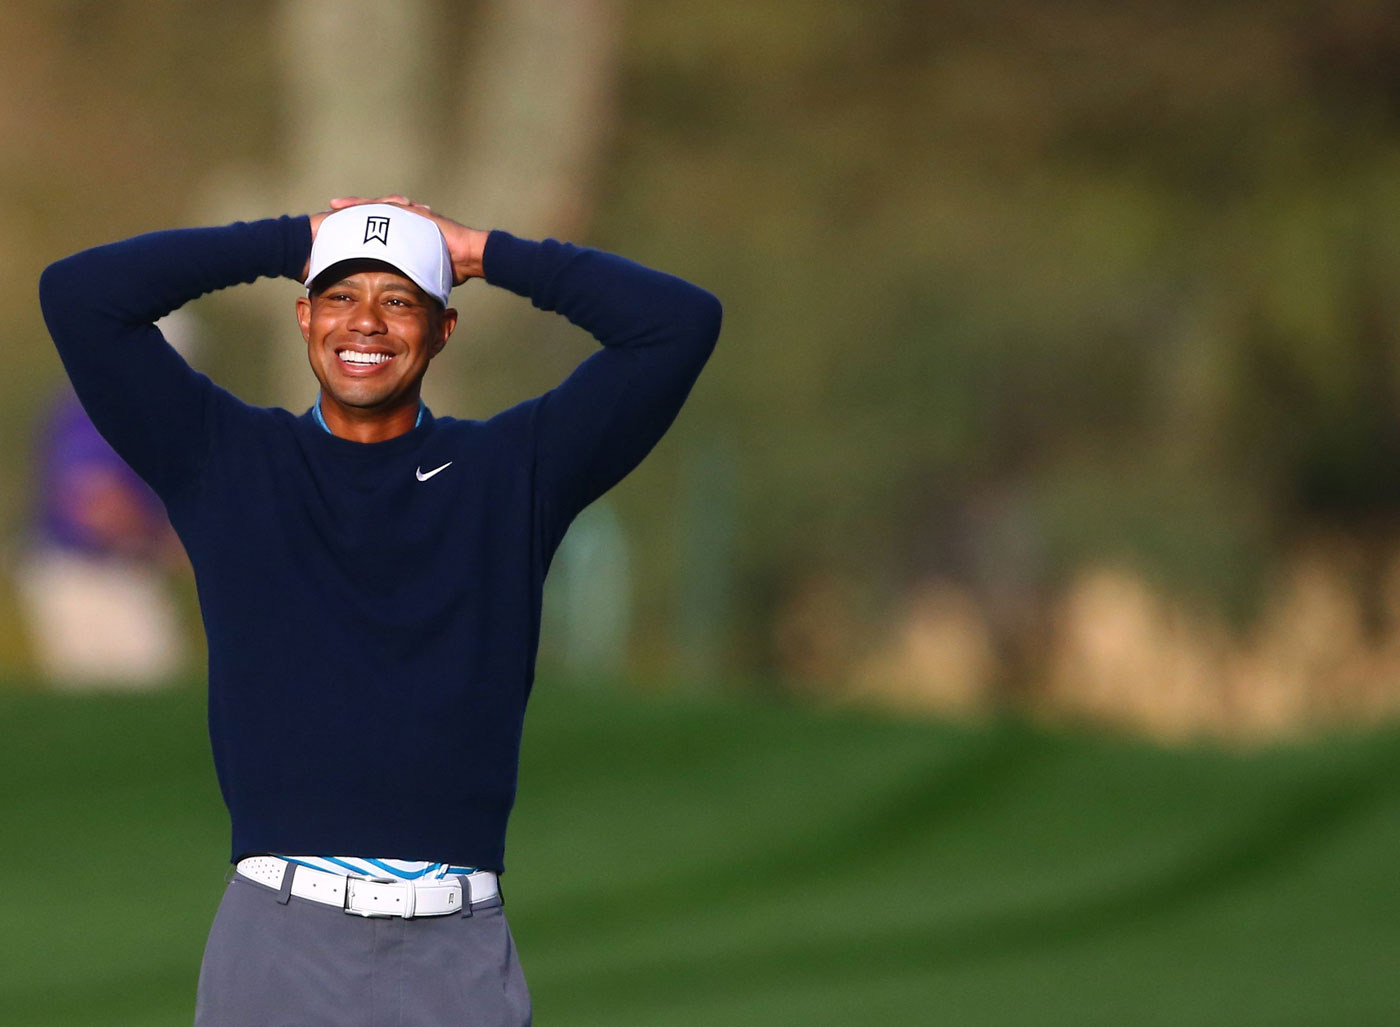 """Overall, I'm very pleased to go out there and hit shots,"" Tiger said after his 9-hole practice round. ""I'm cranking up speed, the speed's coming back. It's going to be a fun year."""